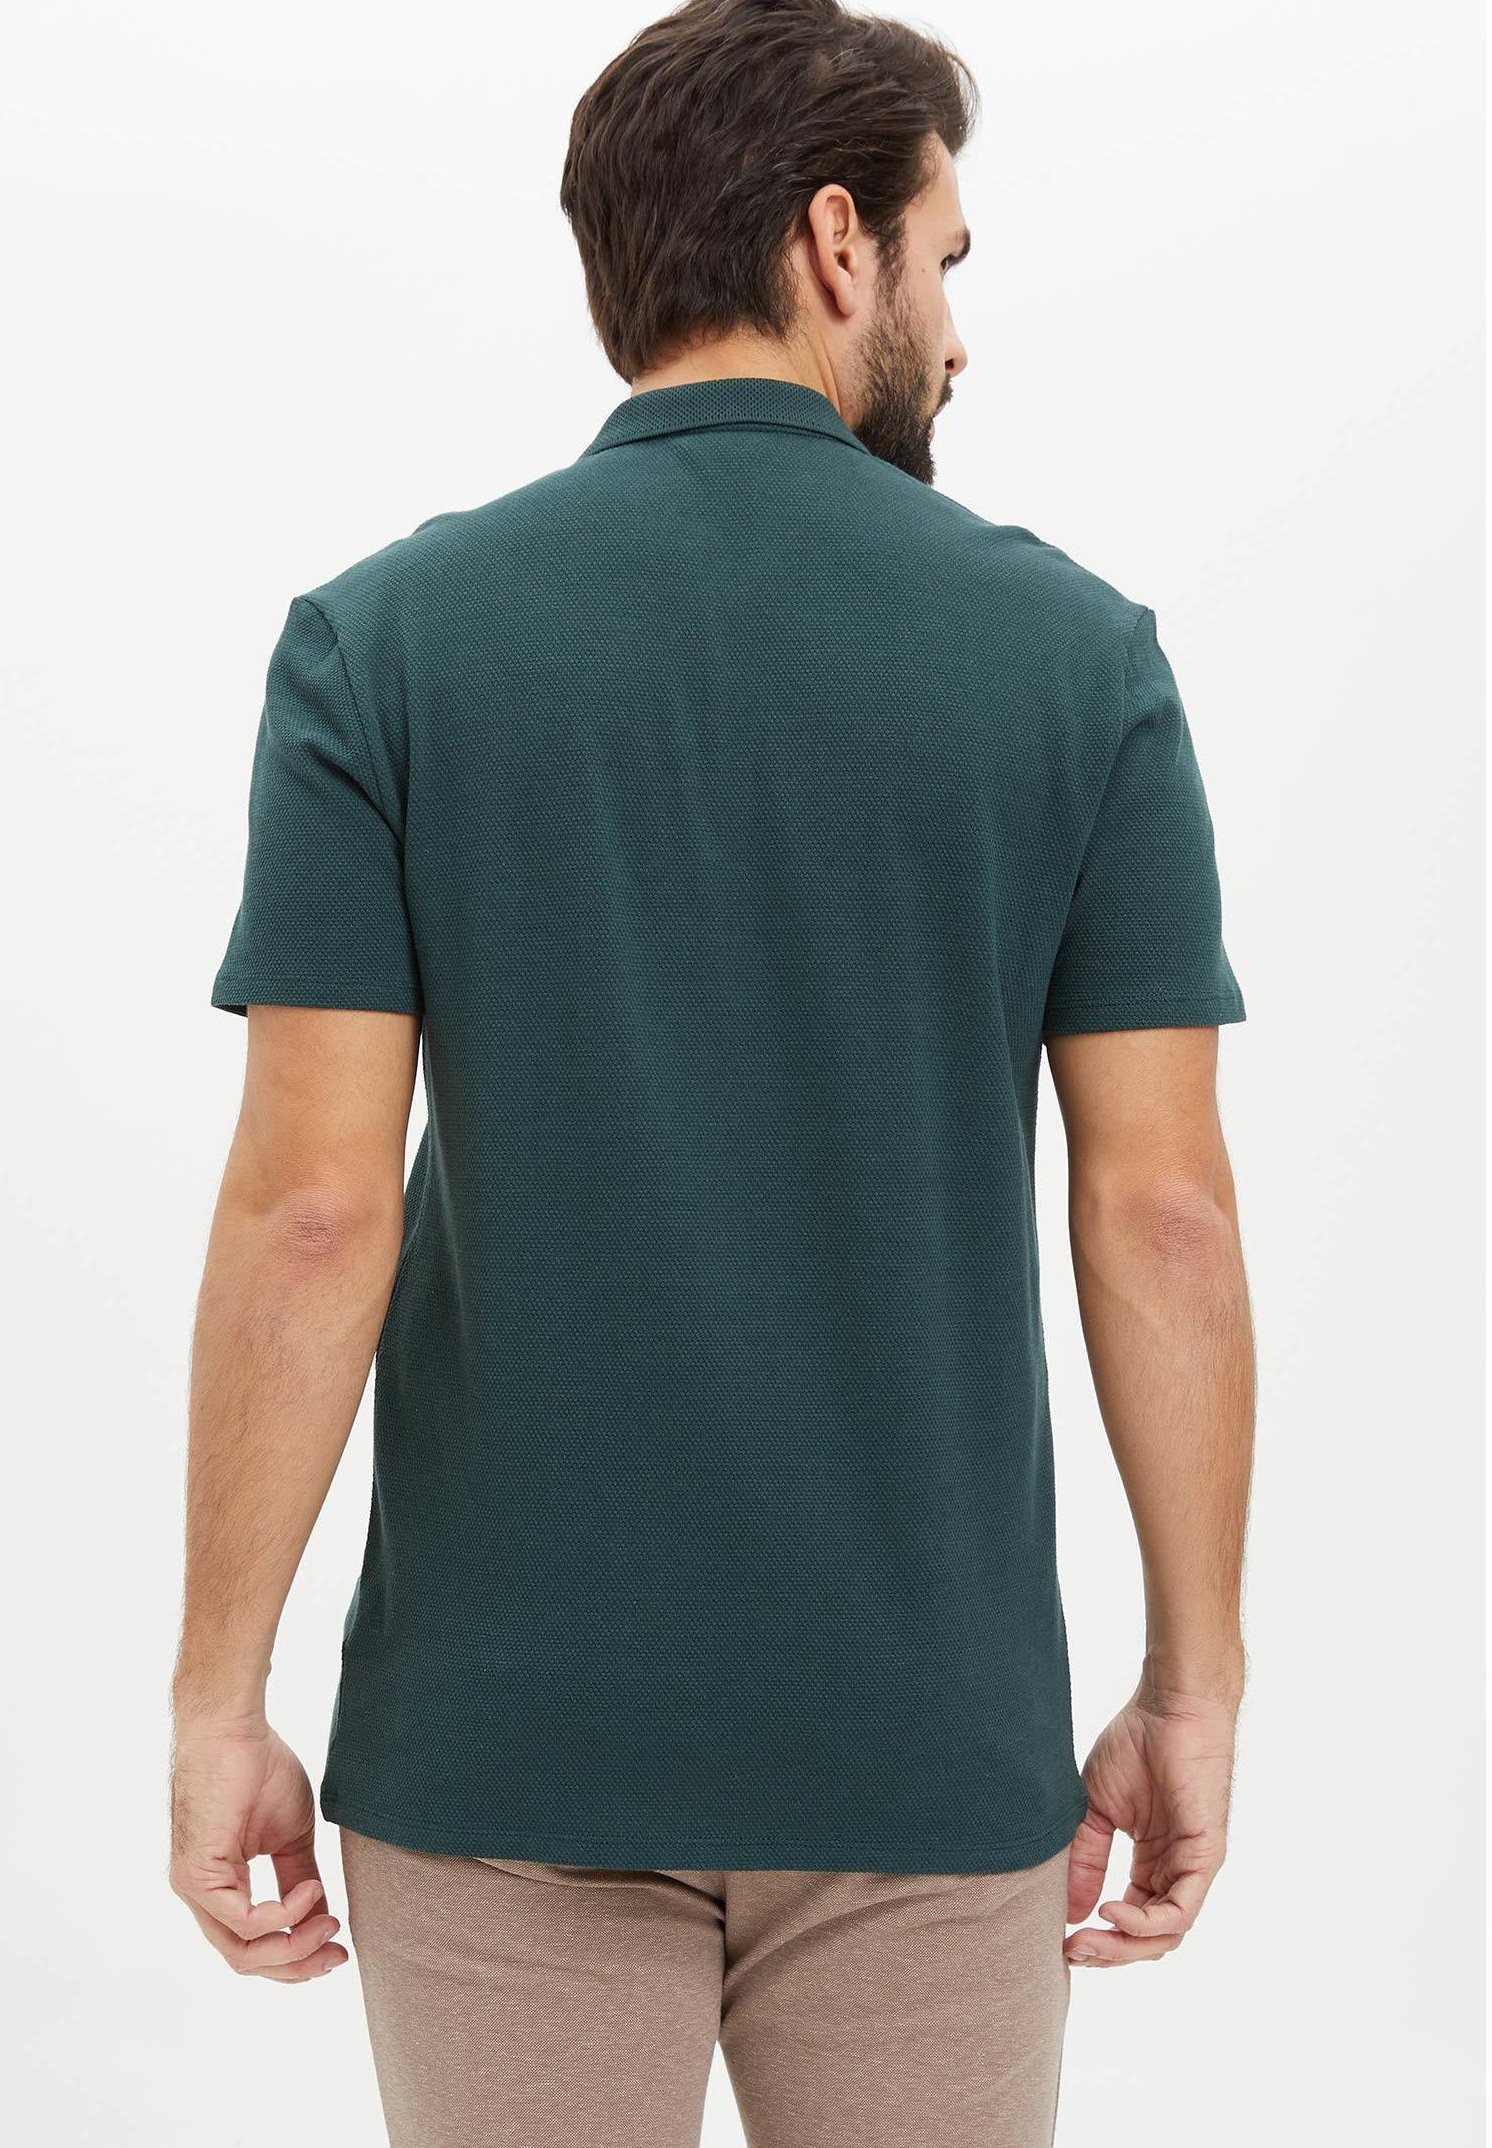 DeFacto Polo shirt - green oVzj6